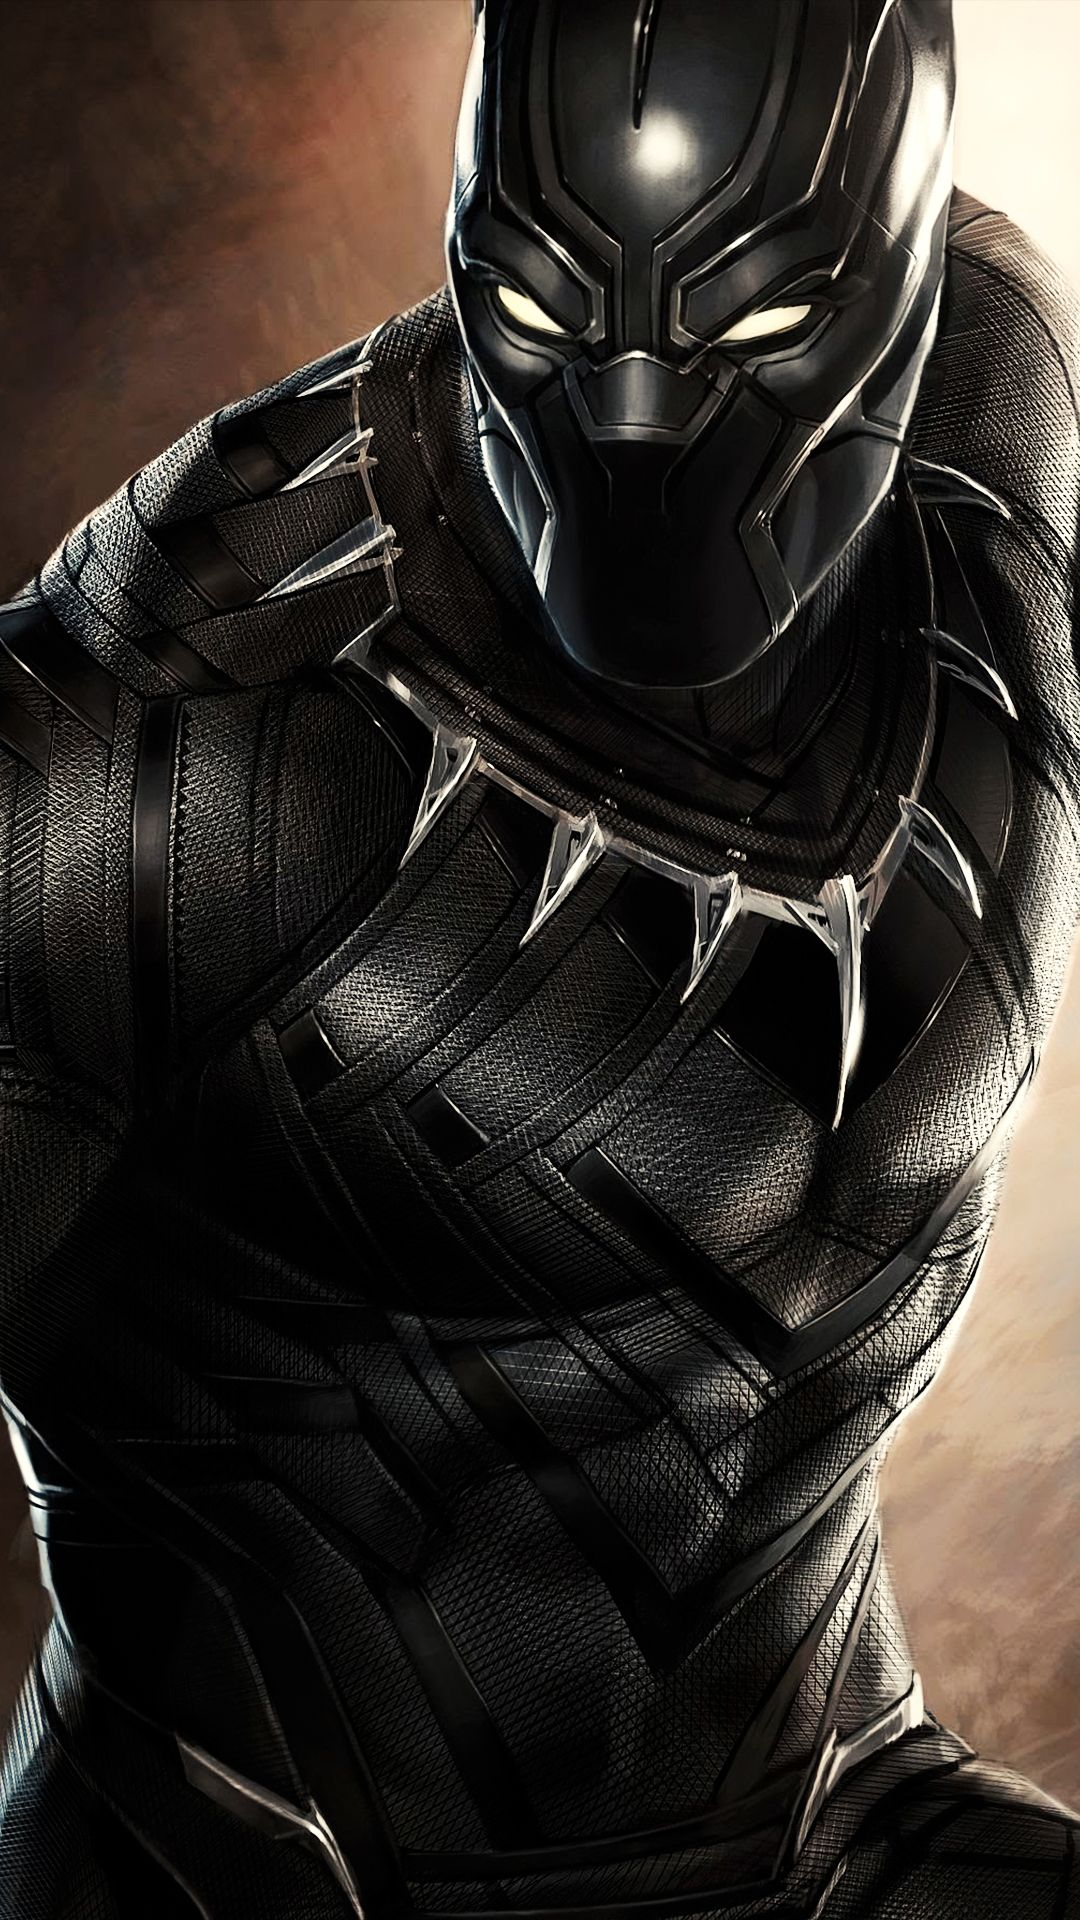 Black panther wallpaper Animal wallpapers Pantera negra